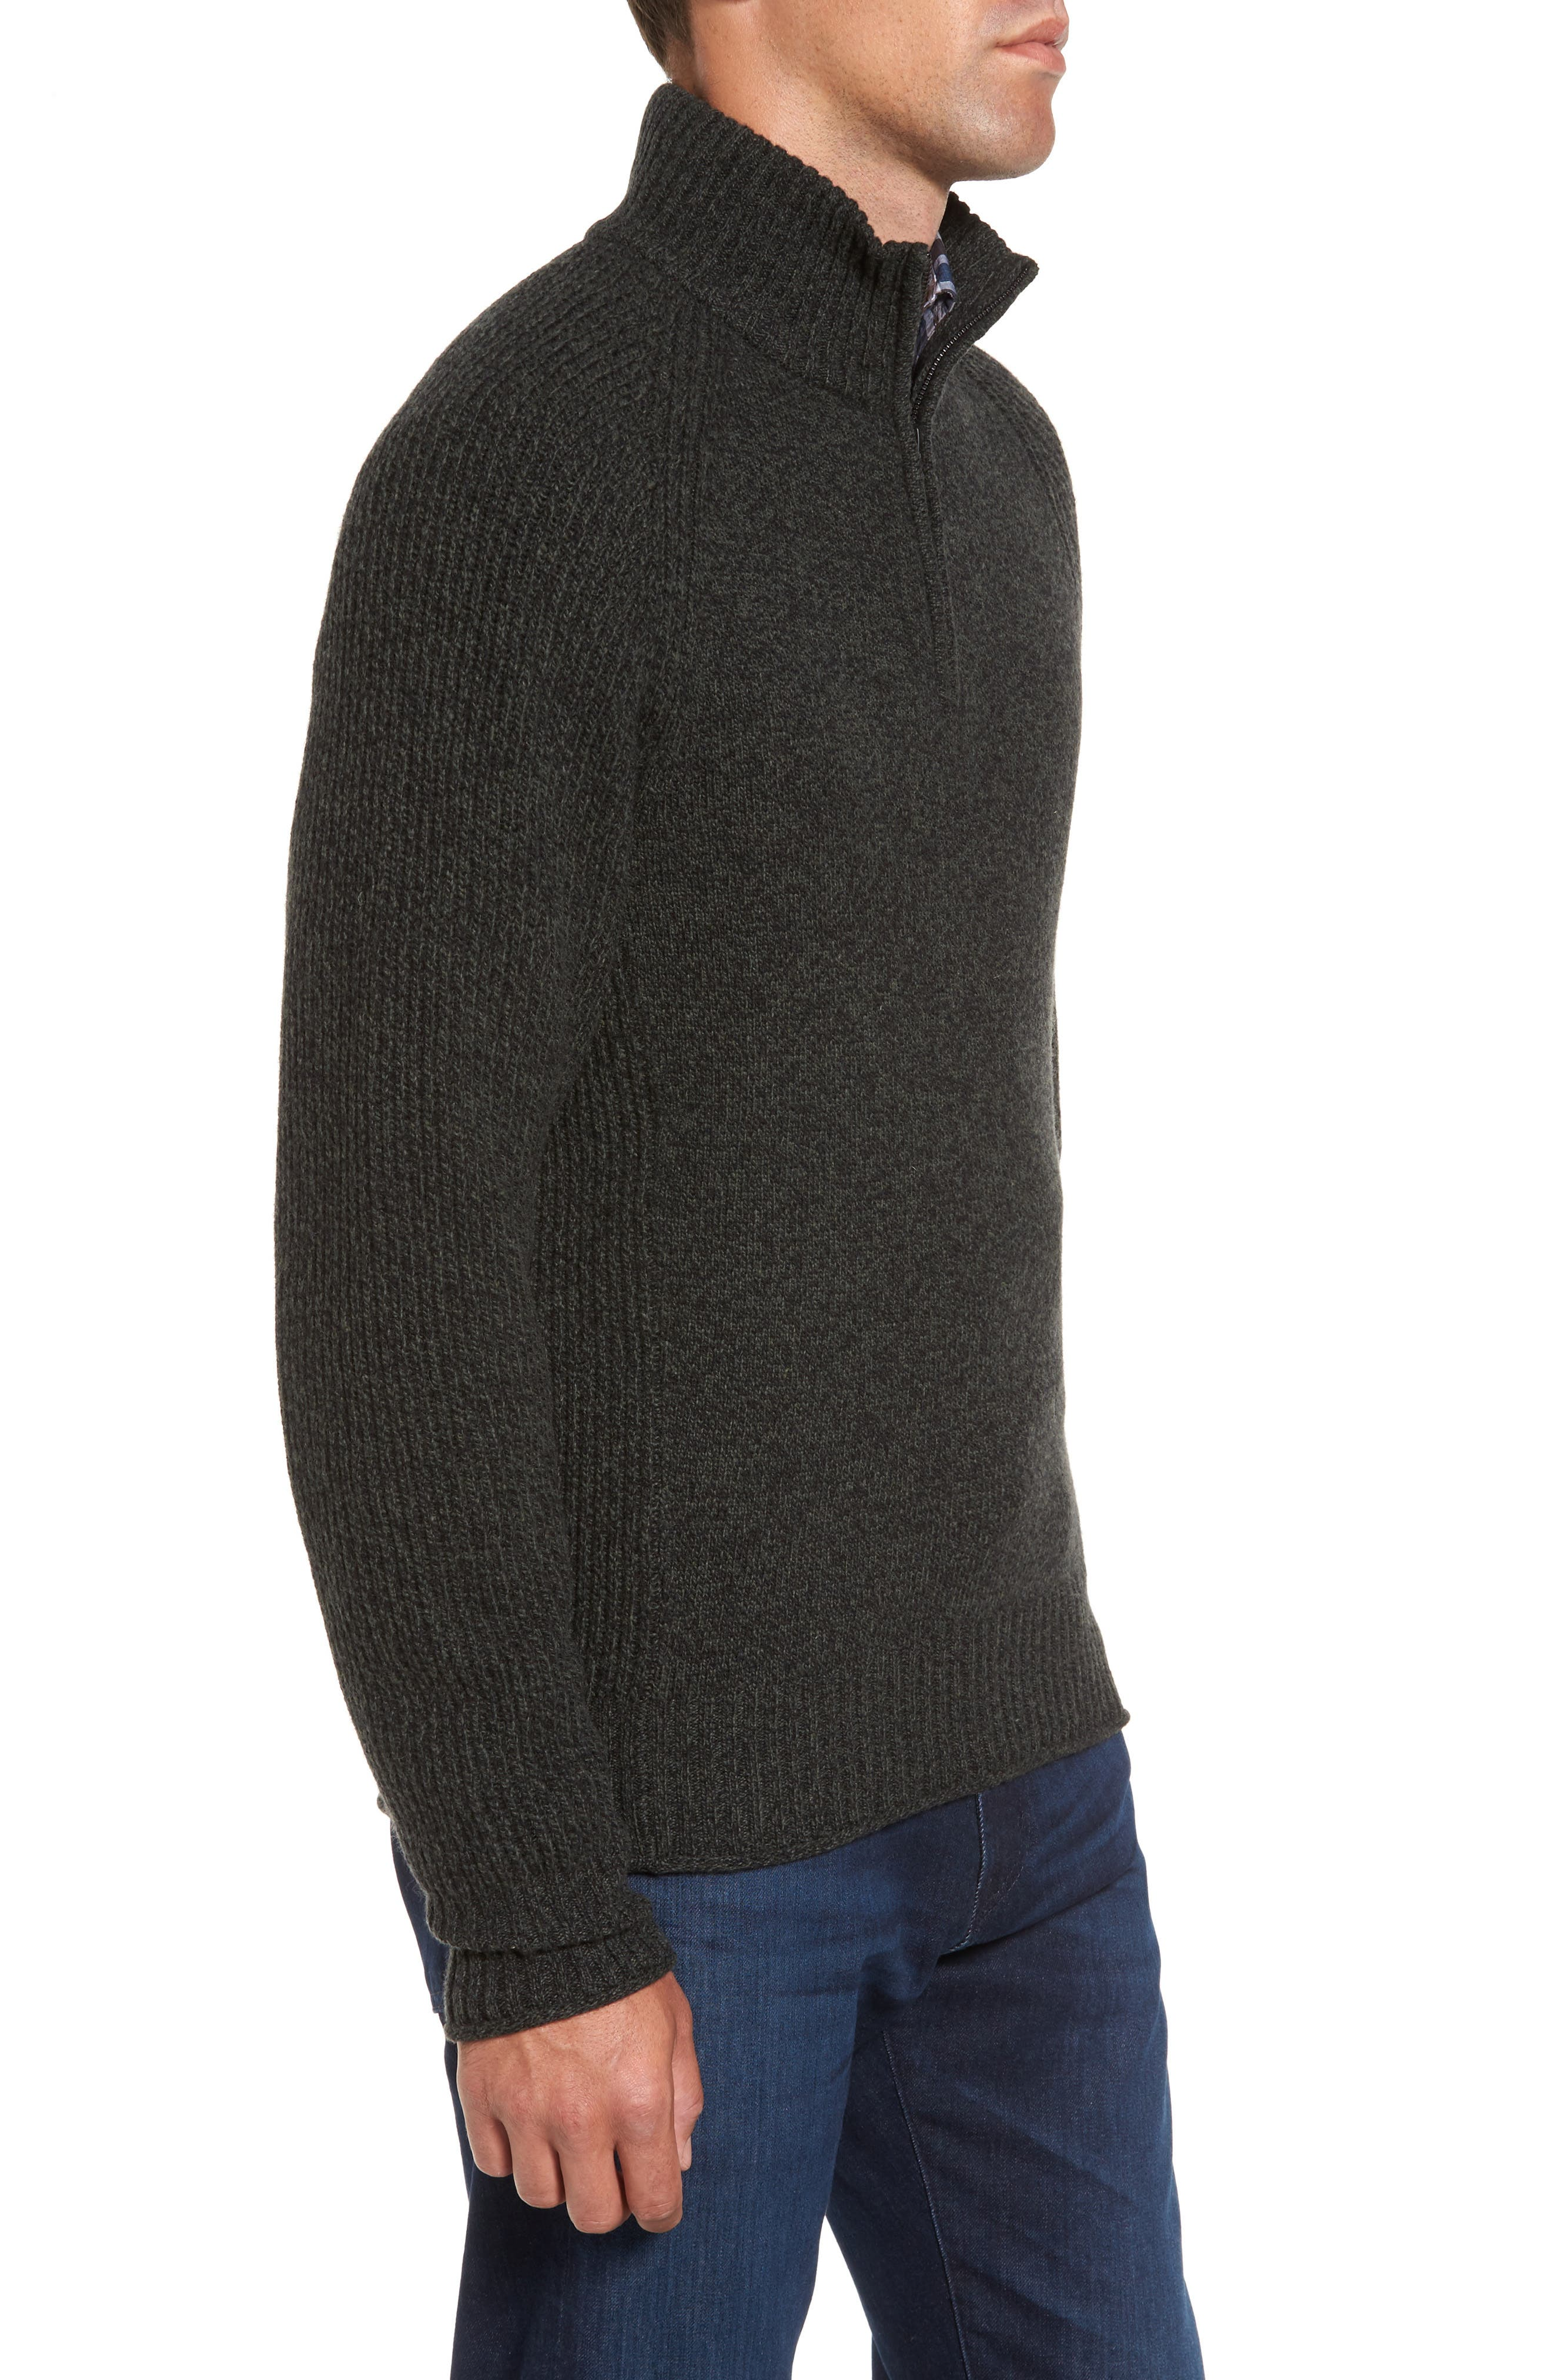 Stredwick Lambswool Sweater,                             Alternate thumbnail 3, color,                             Forest